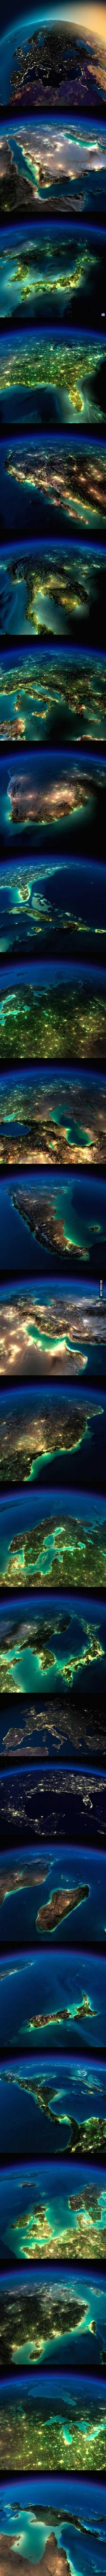 Earth at Night. Beautiful but terrible in that it's difficult to see the Milky Way through the light pollution.